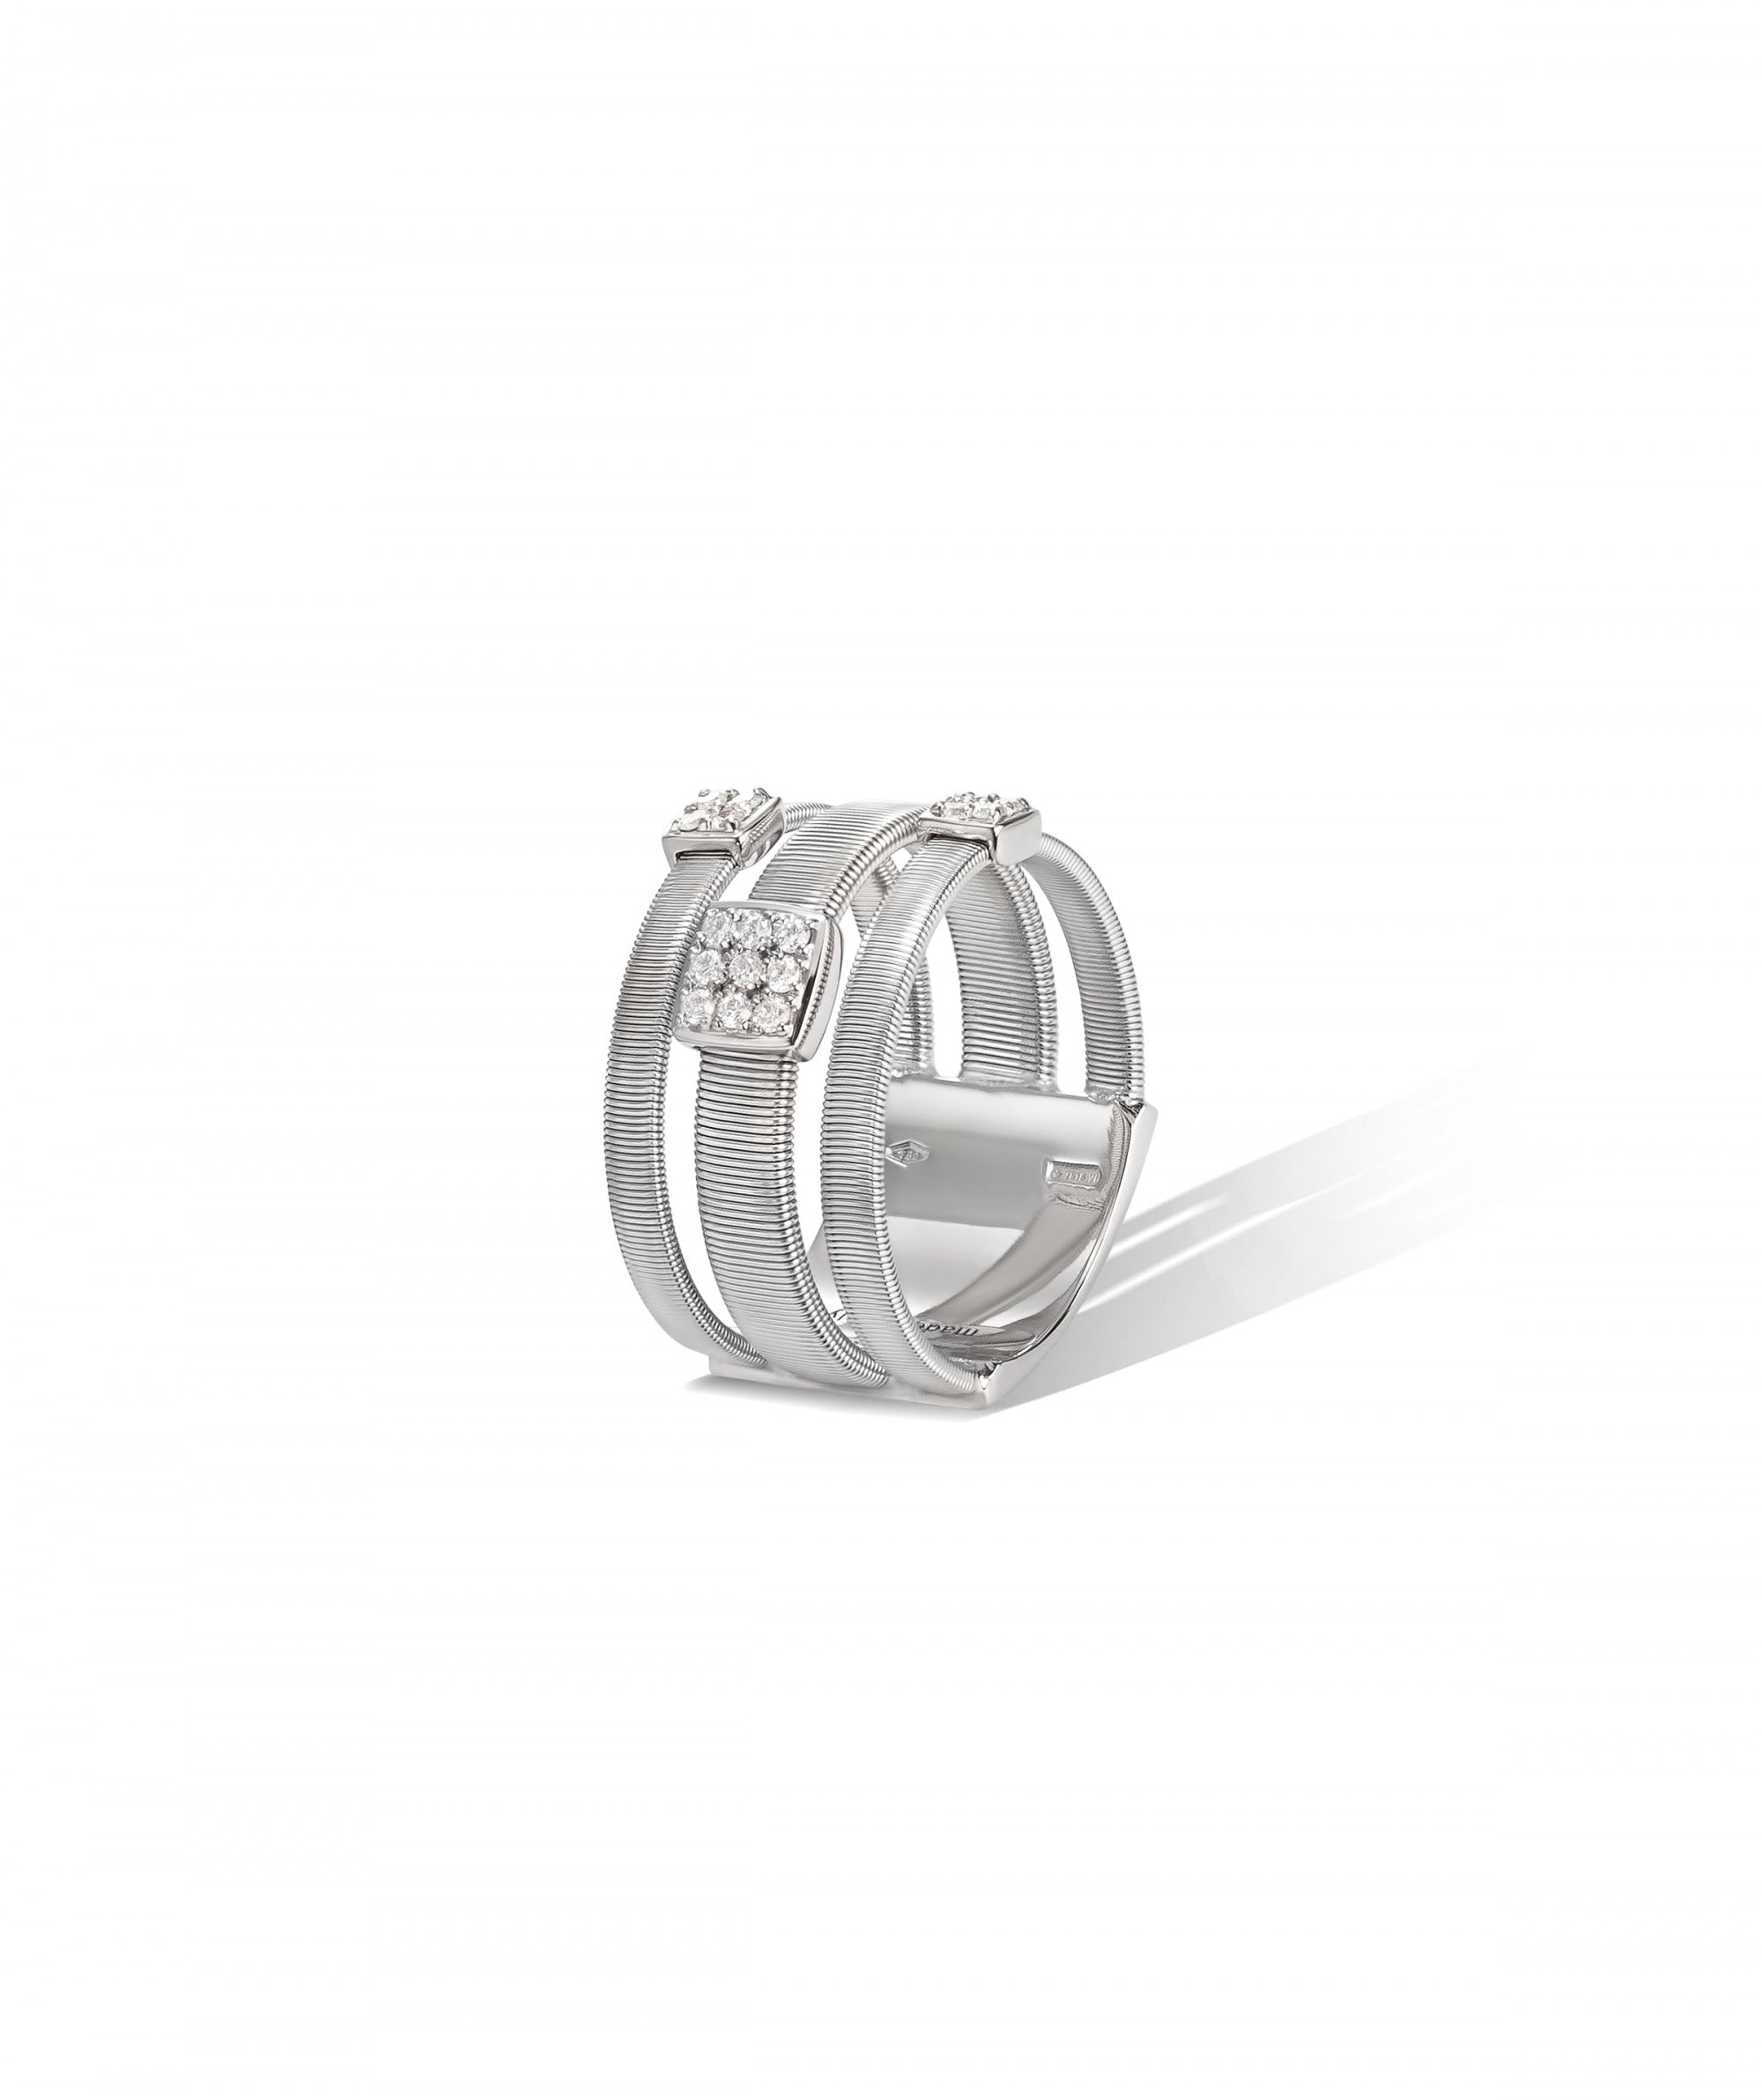 Masai Ring in 18k White Gold with Pave Diamonds Triple Band - Orsini Jewellers NZ